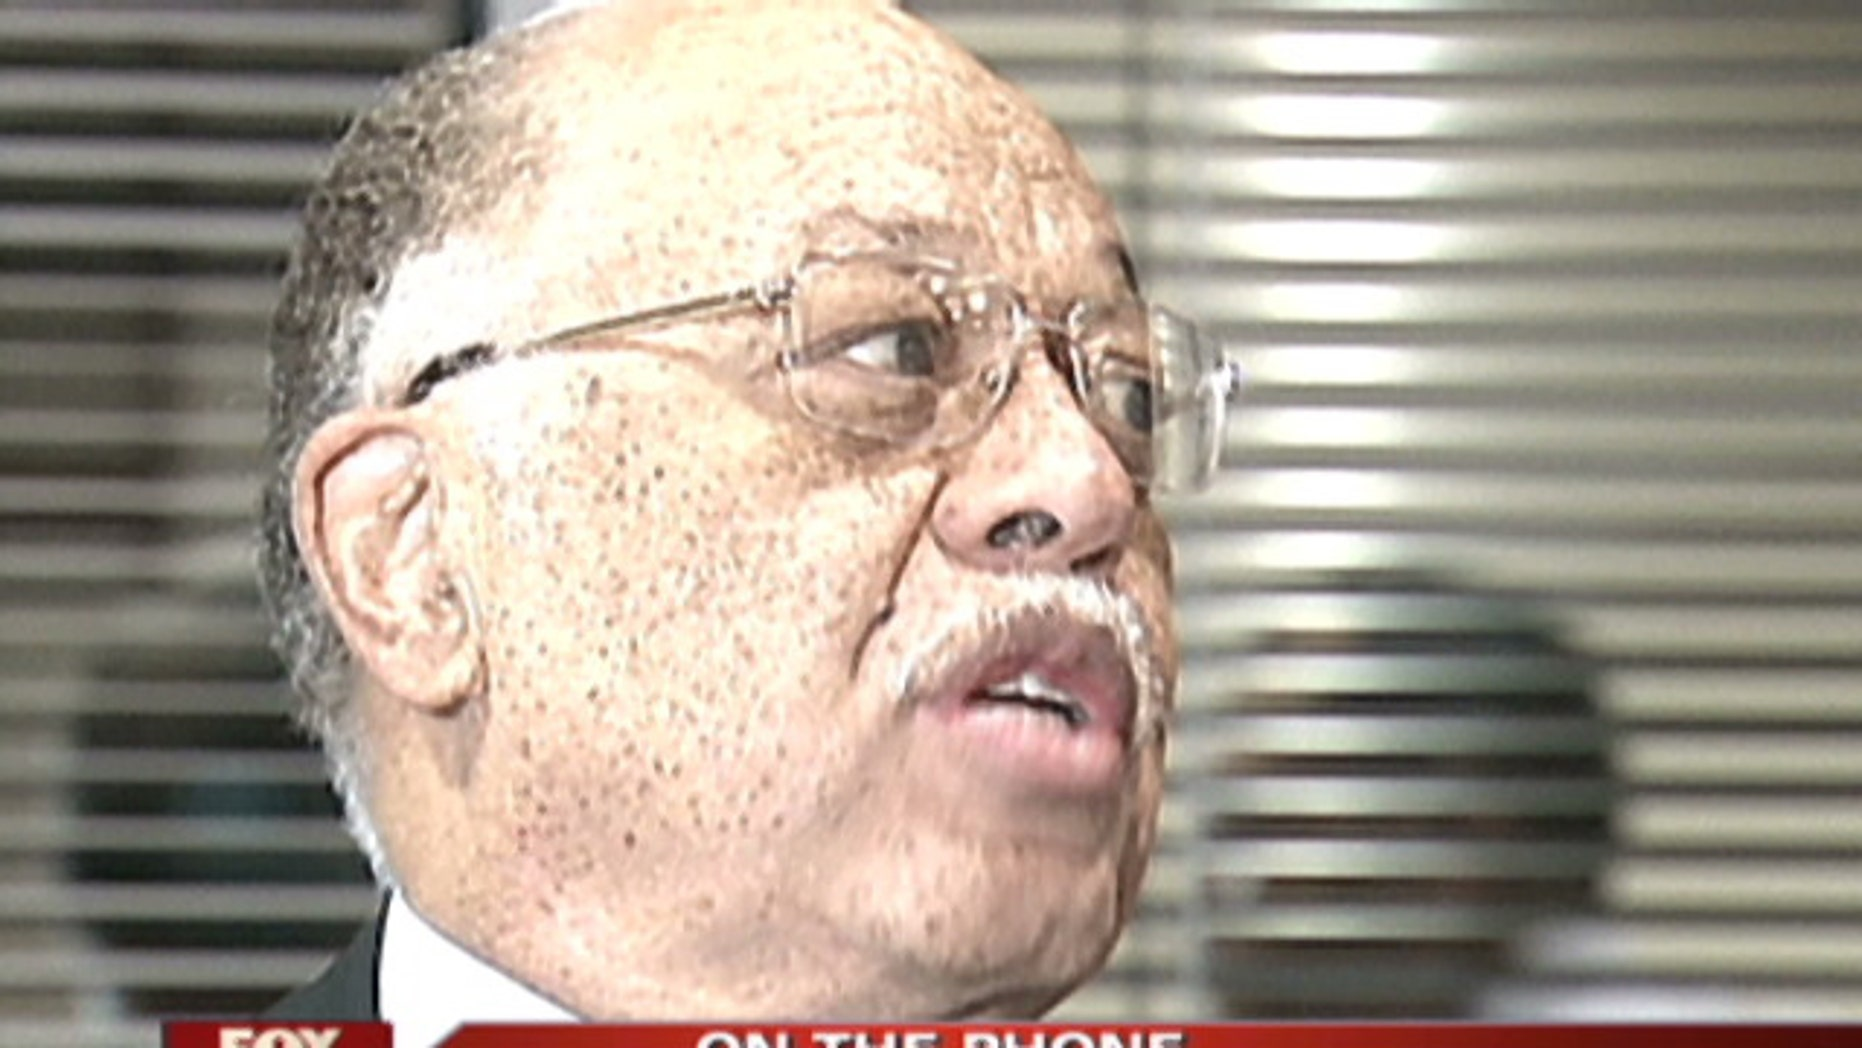 Dr. Kermit Gosnell, 69, made millions of dollars over 30 years, performing as many illegal, late-term abortions as he could, prosecutors said (MyFoxPhilly.com).